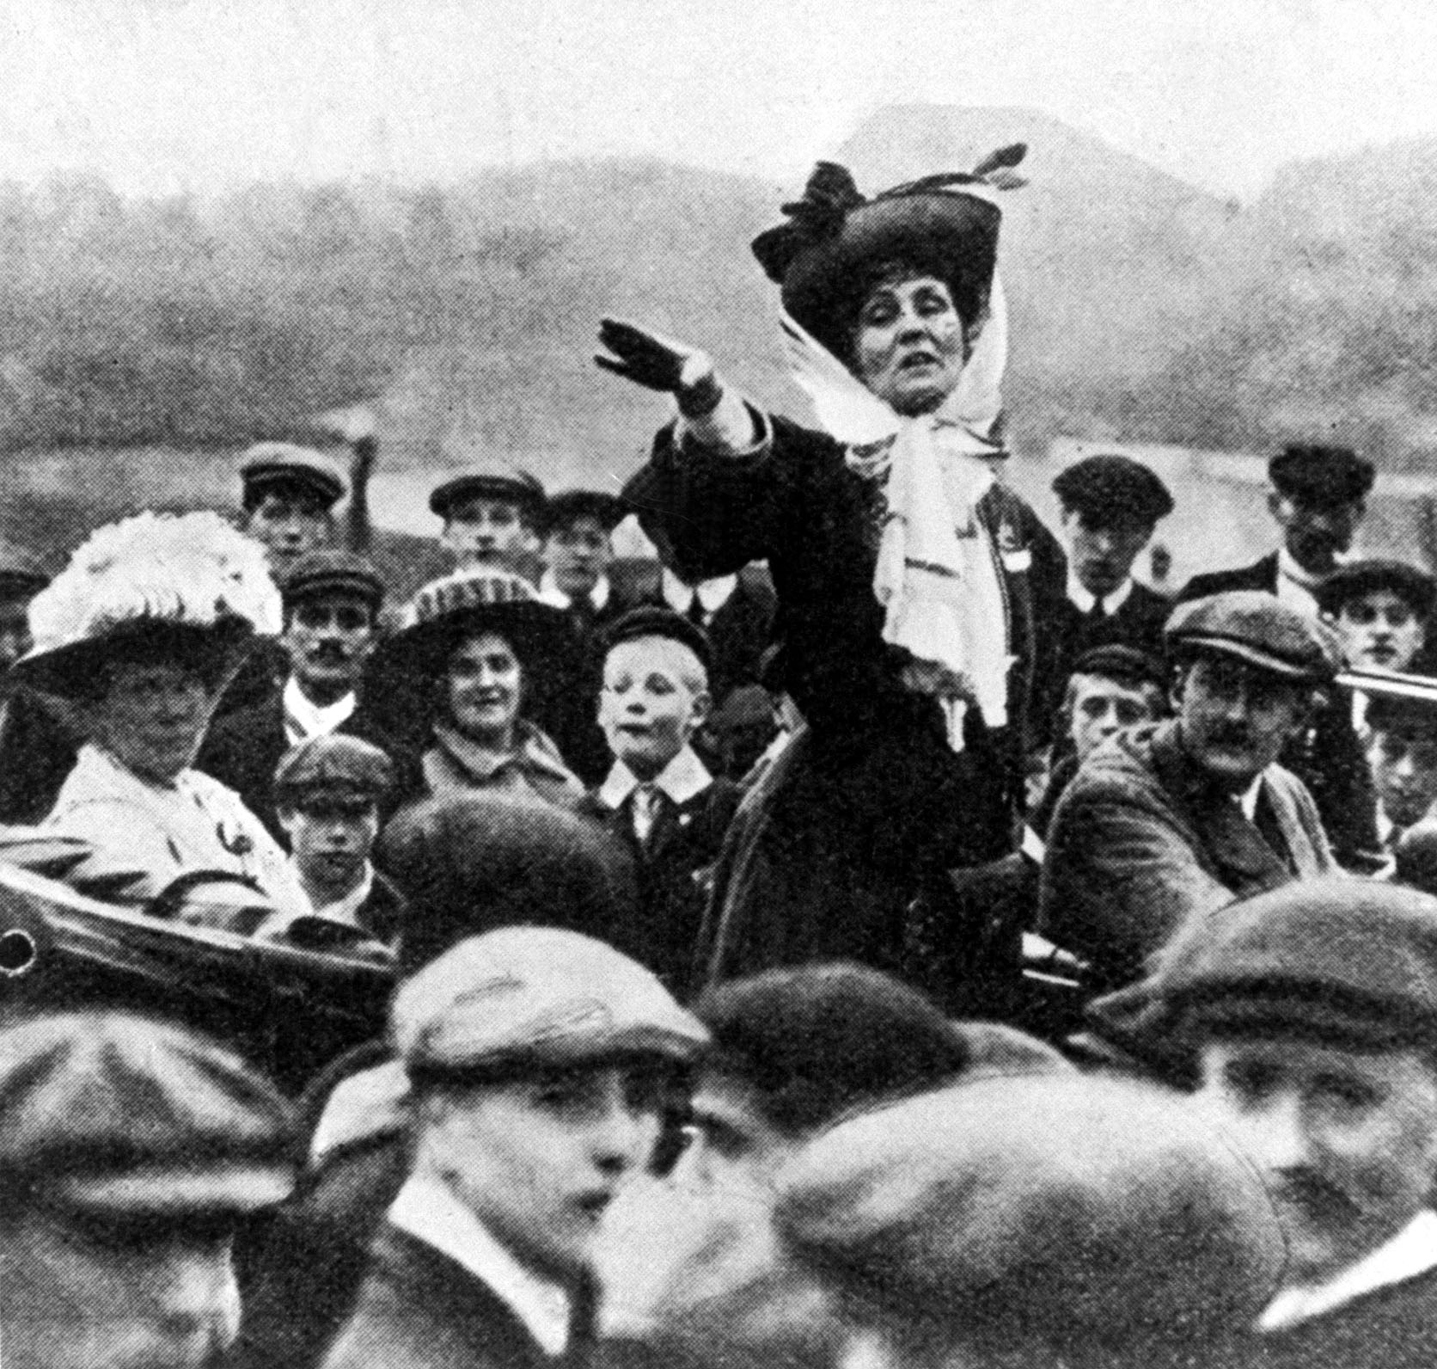 English suffragist Emmeline Pankhurst (1858-1928) making an open air speech. (Photo by Time Life Pictures/Mansell/Time Life Pictures/Getty Images)